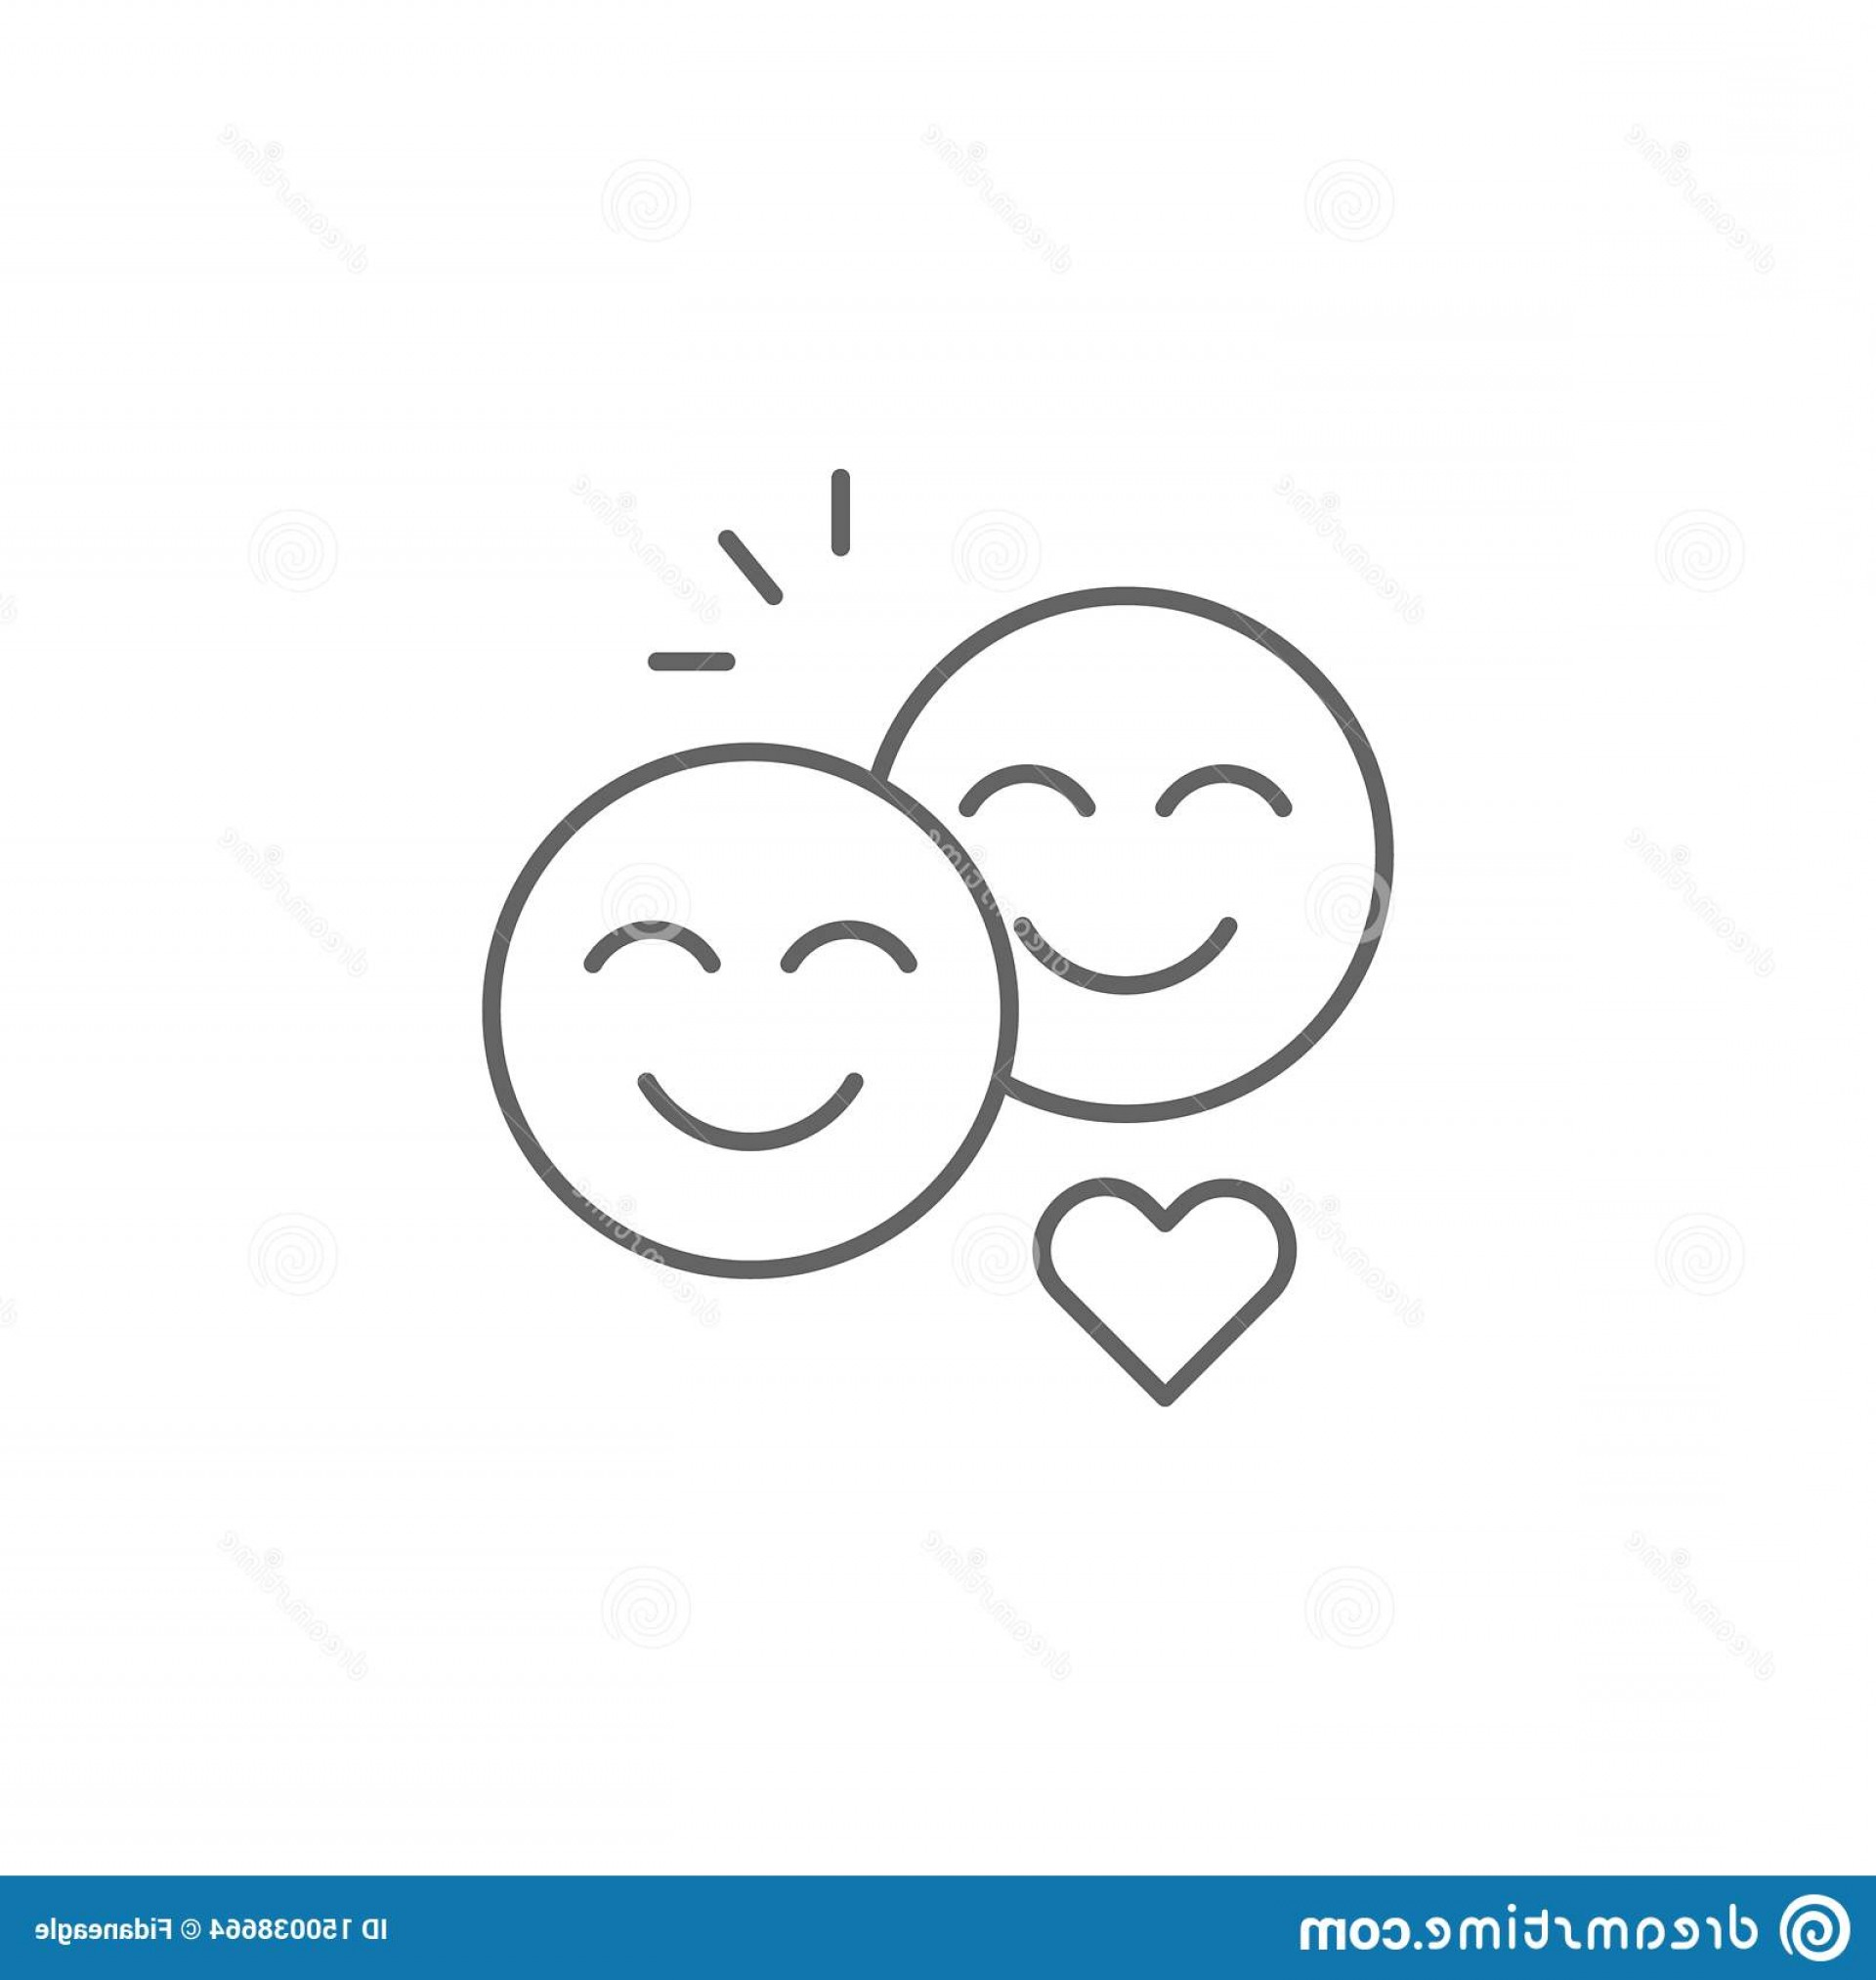 What Are Vectors Used For: Smiley Friendship Outline Icon Elements Line Signs Symbols Vectors Can Be Used Web Logo Mobile App Ui Ux White Image